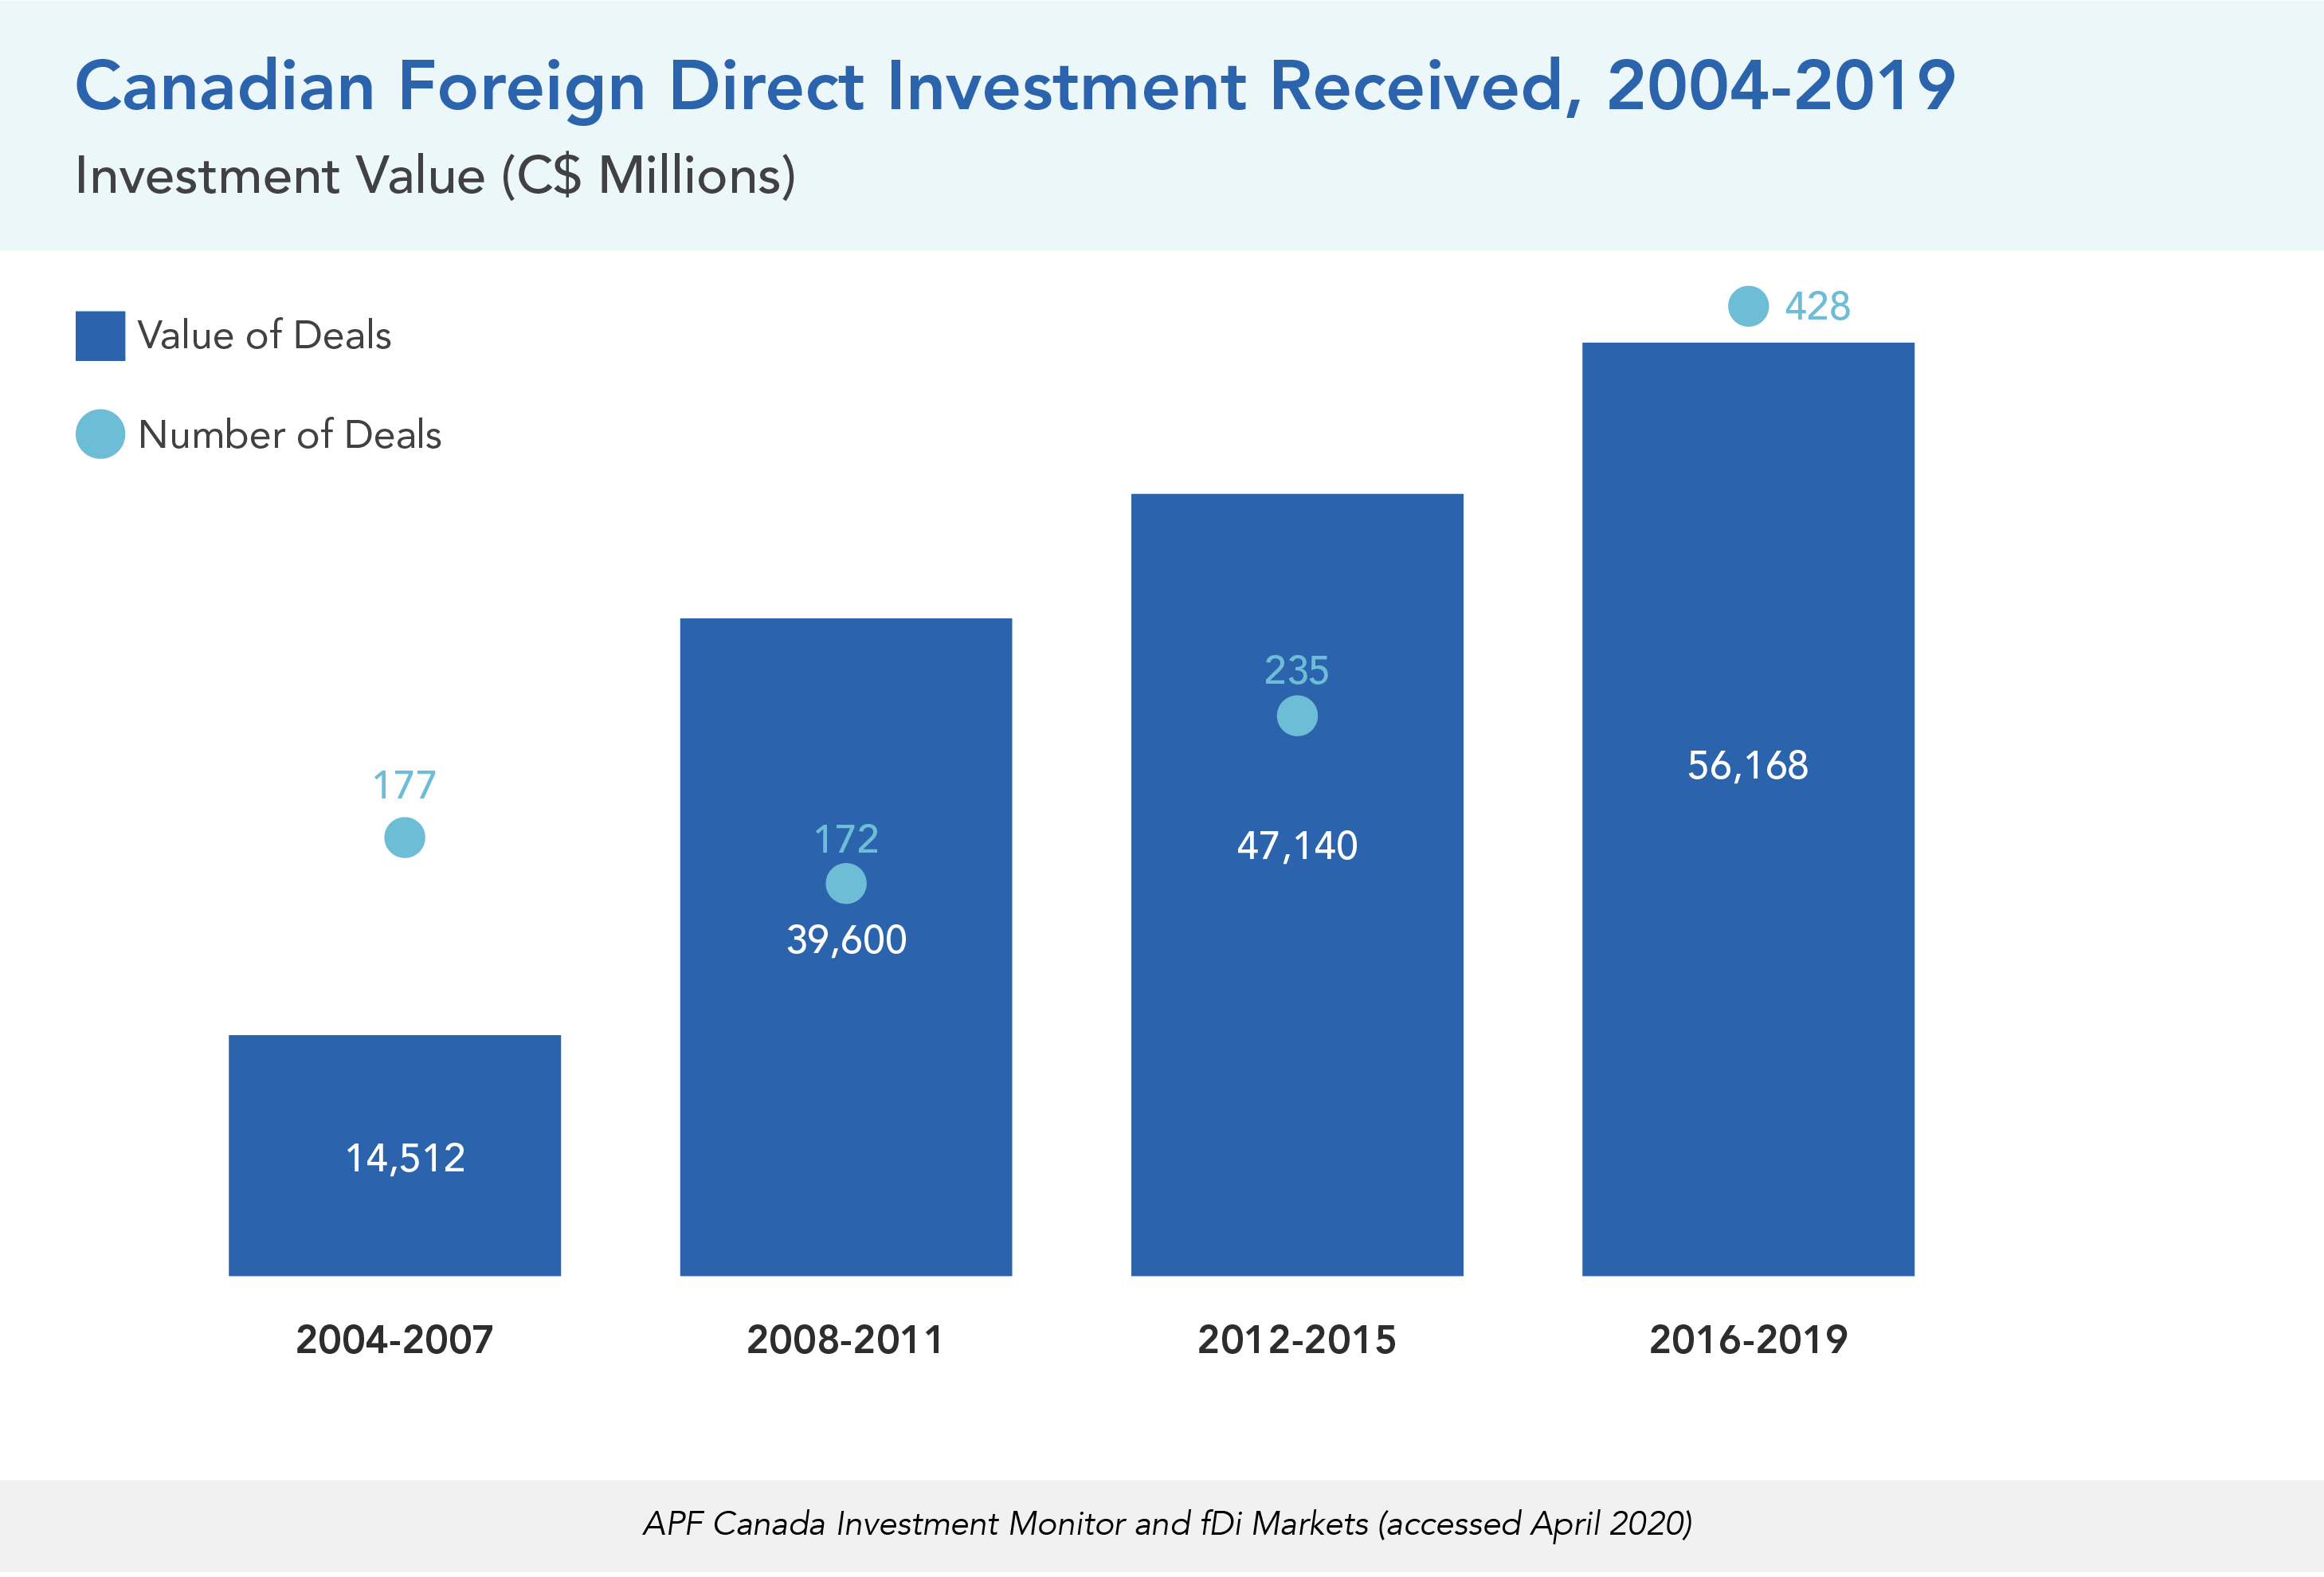 Canadian Foreign Direct Investment Received, 2004-2019